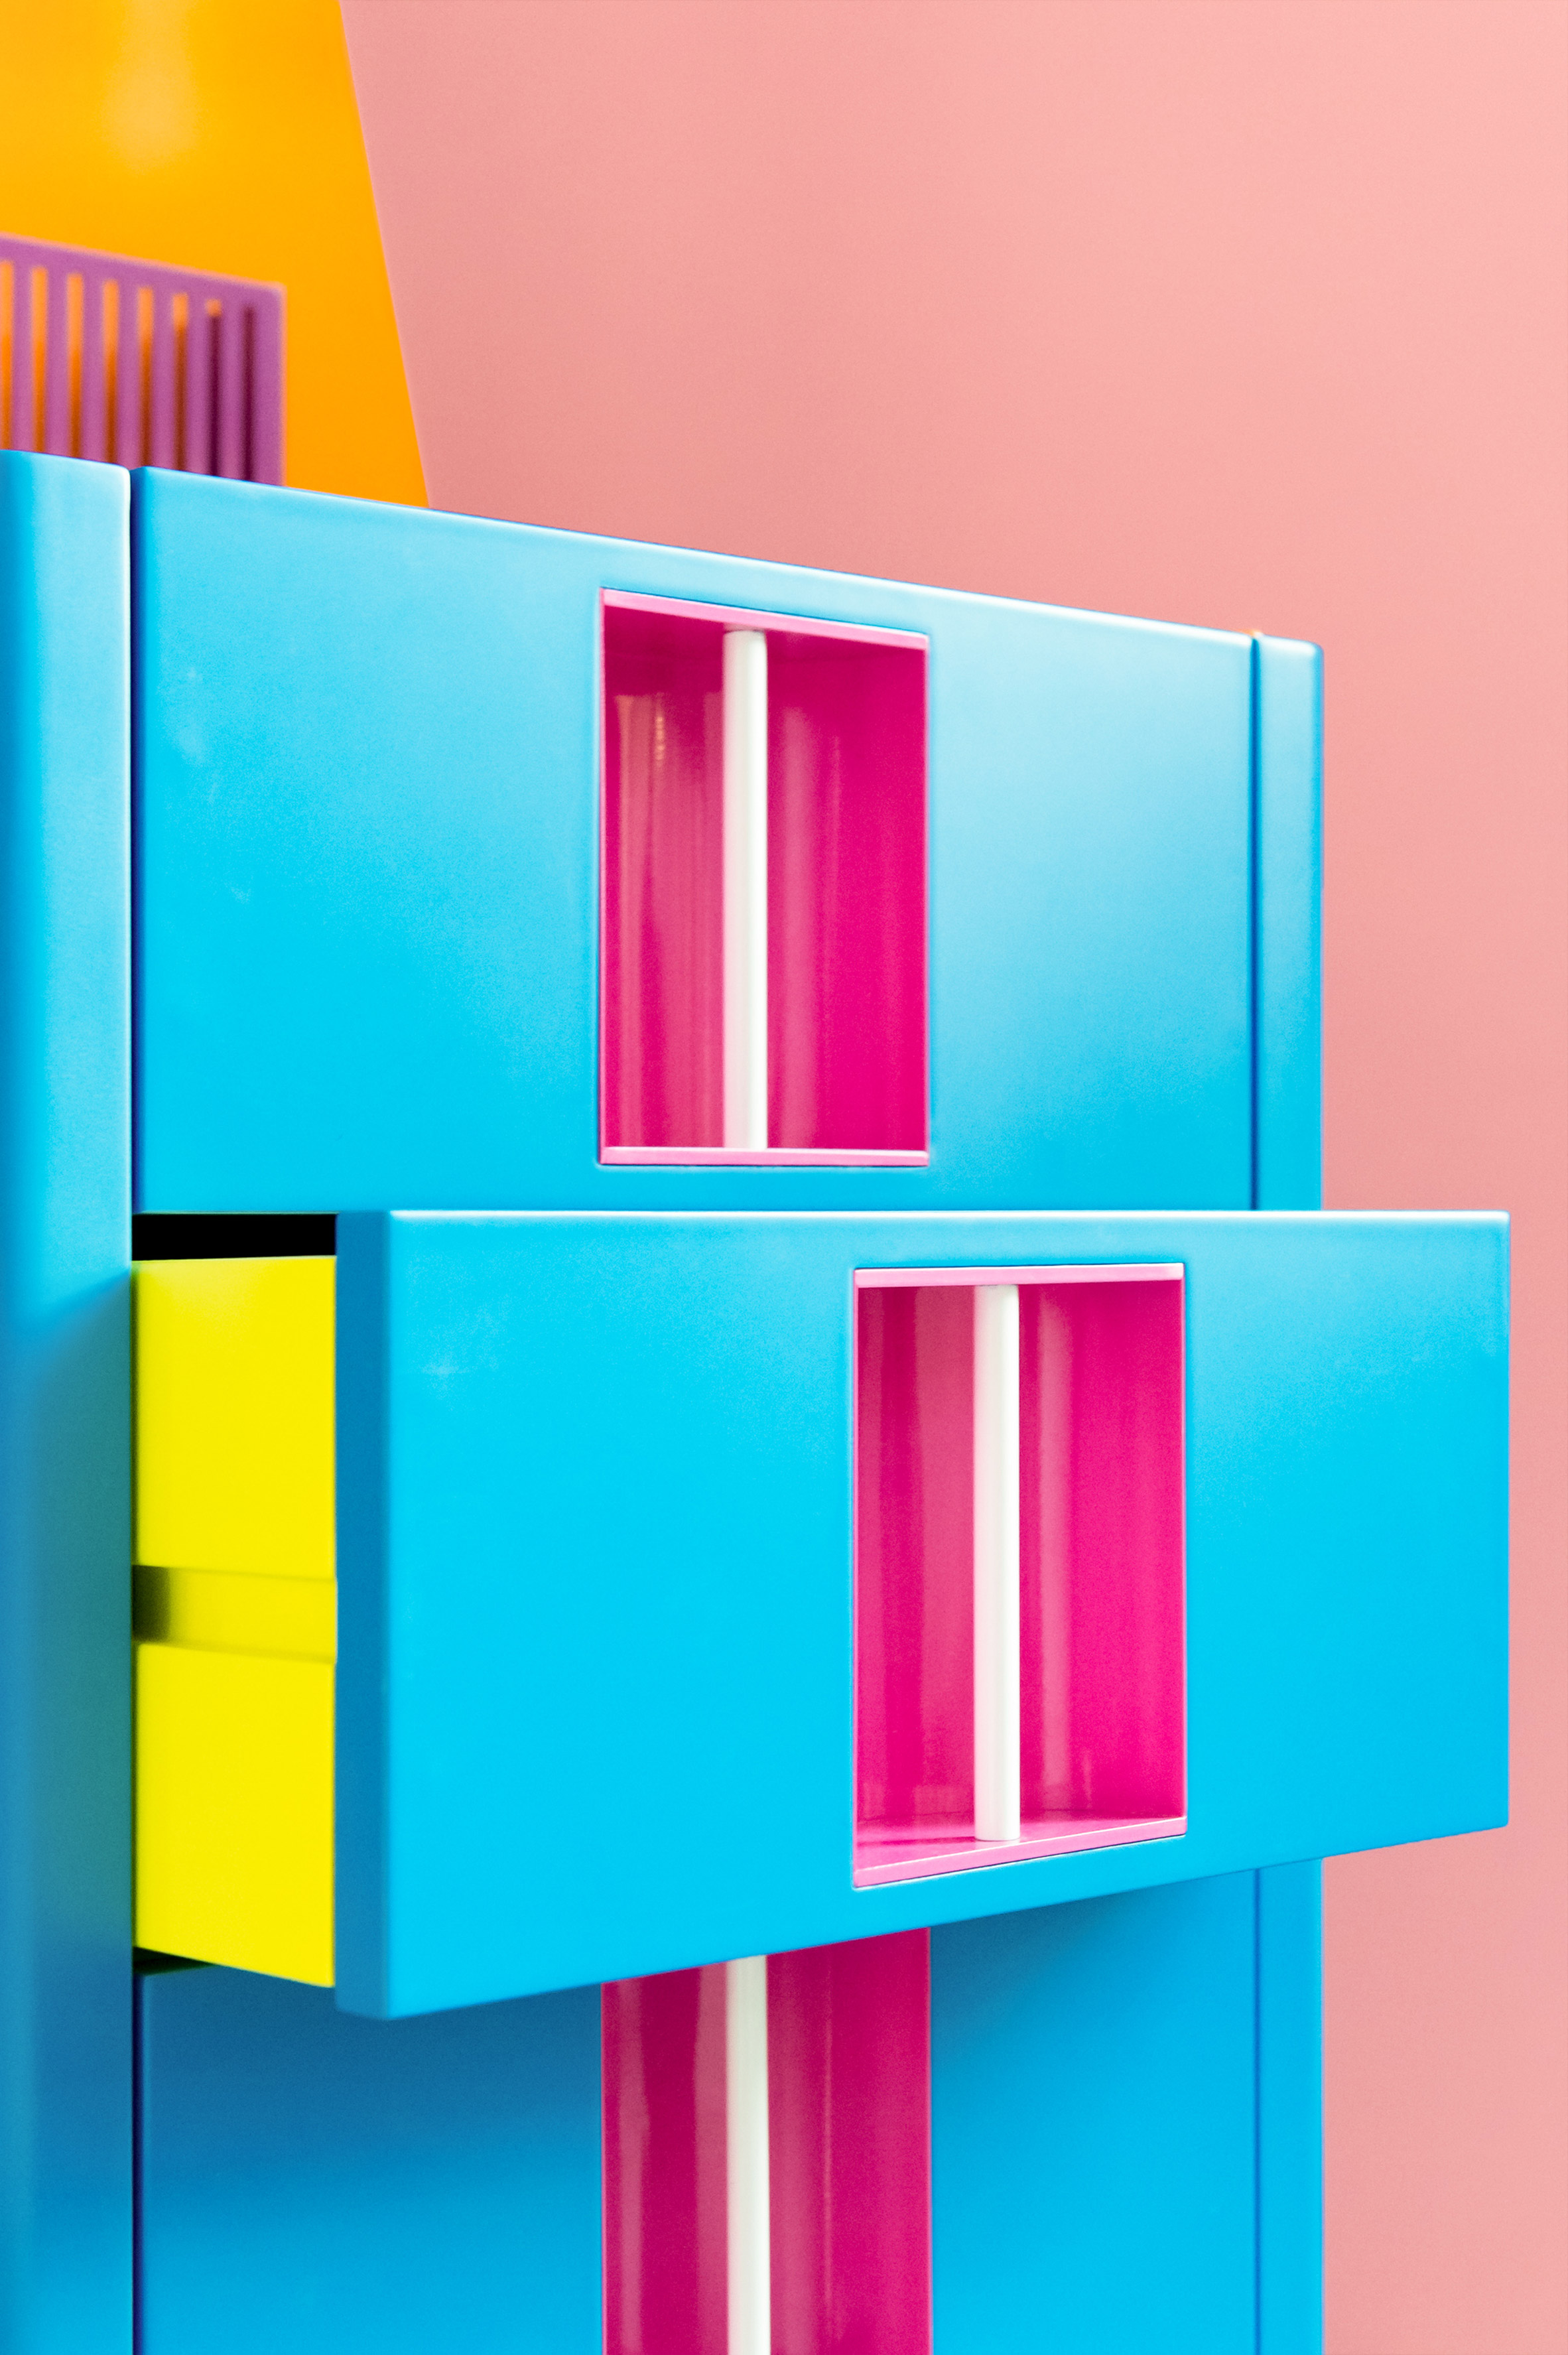 nakano-twins-adam-nathaniel-furman-furniture-design_dezeen_2364_col_19.jpg